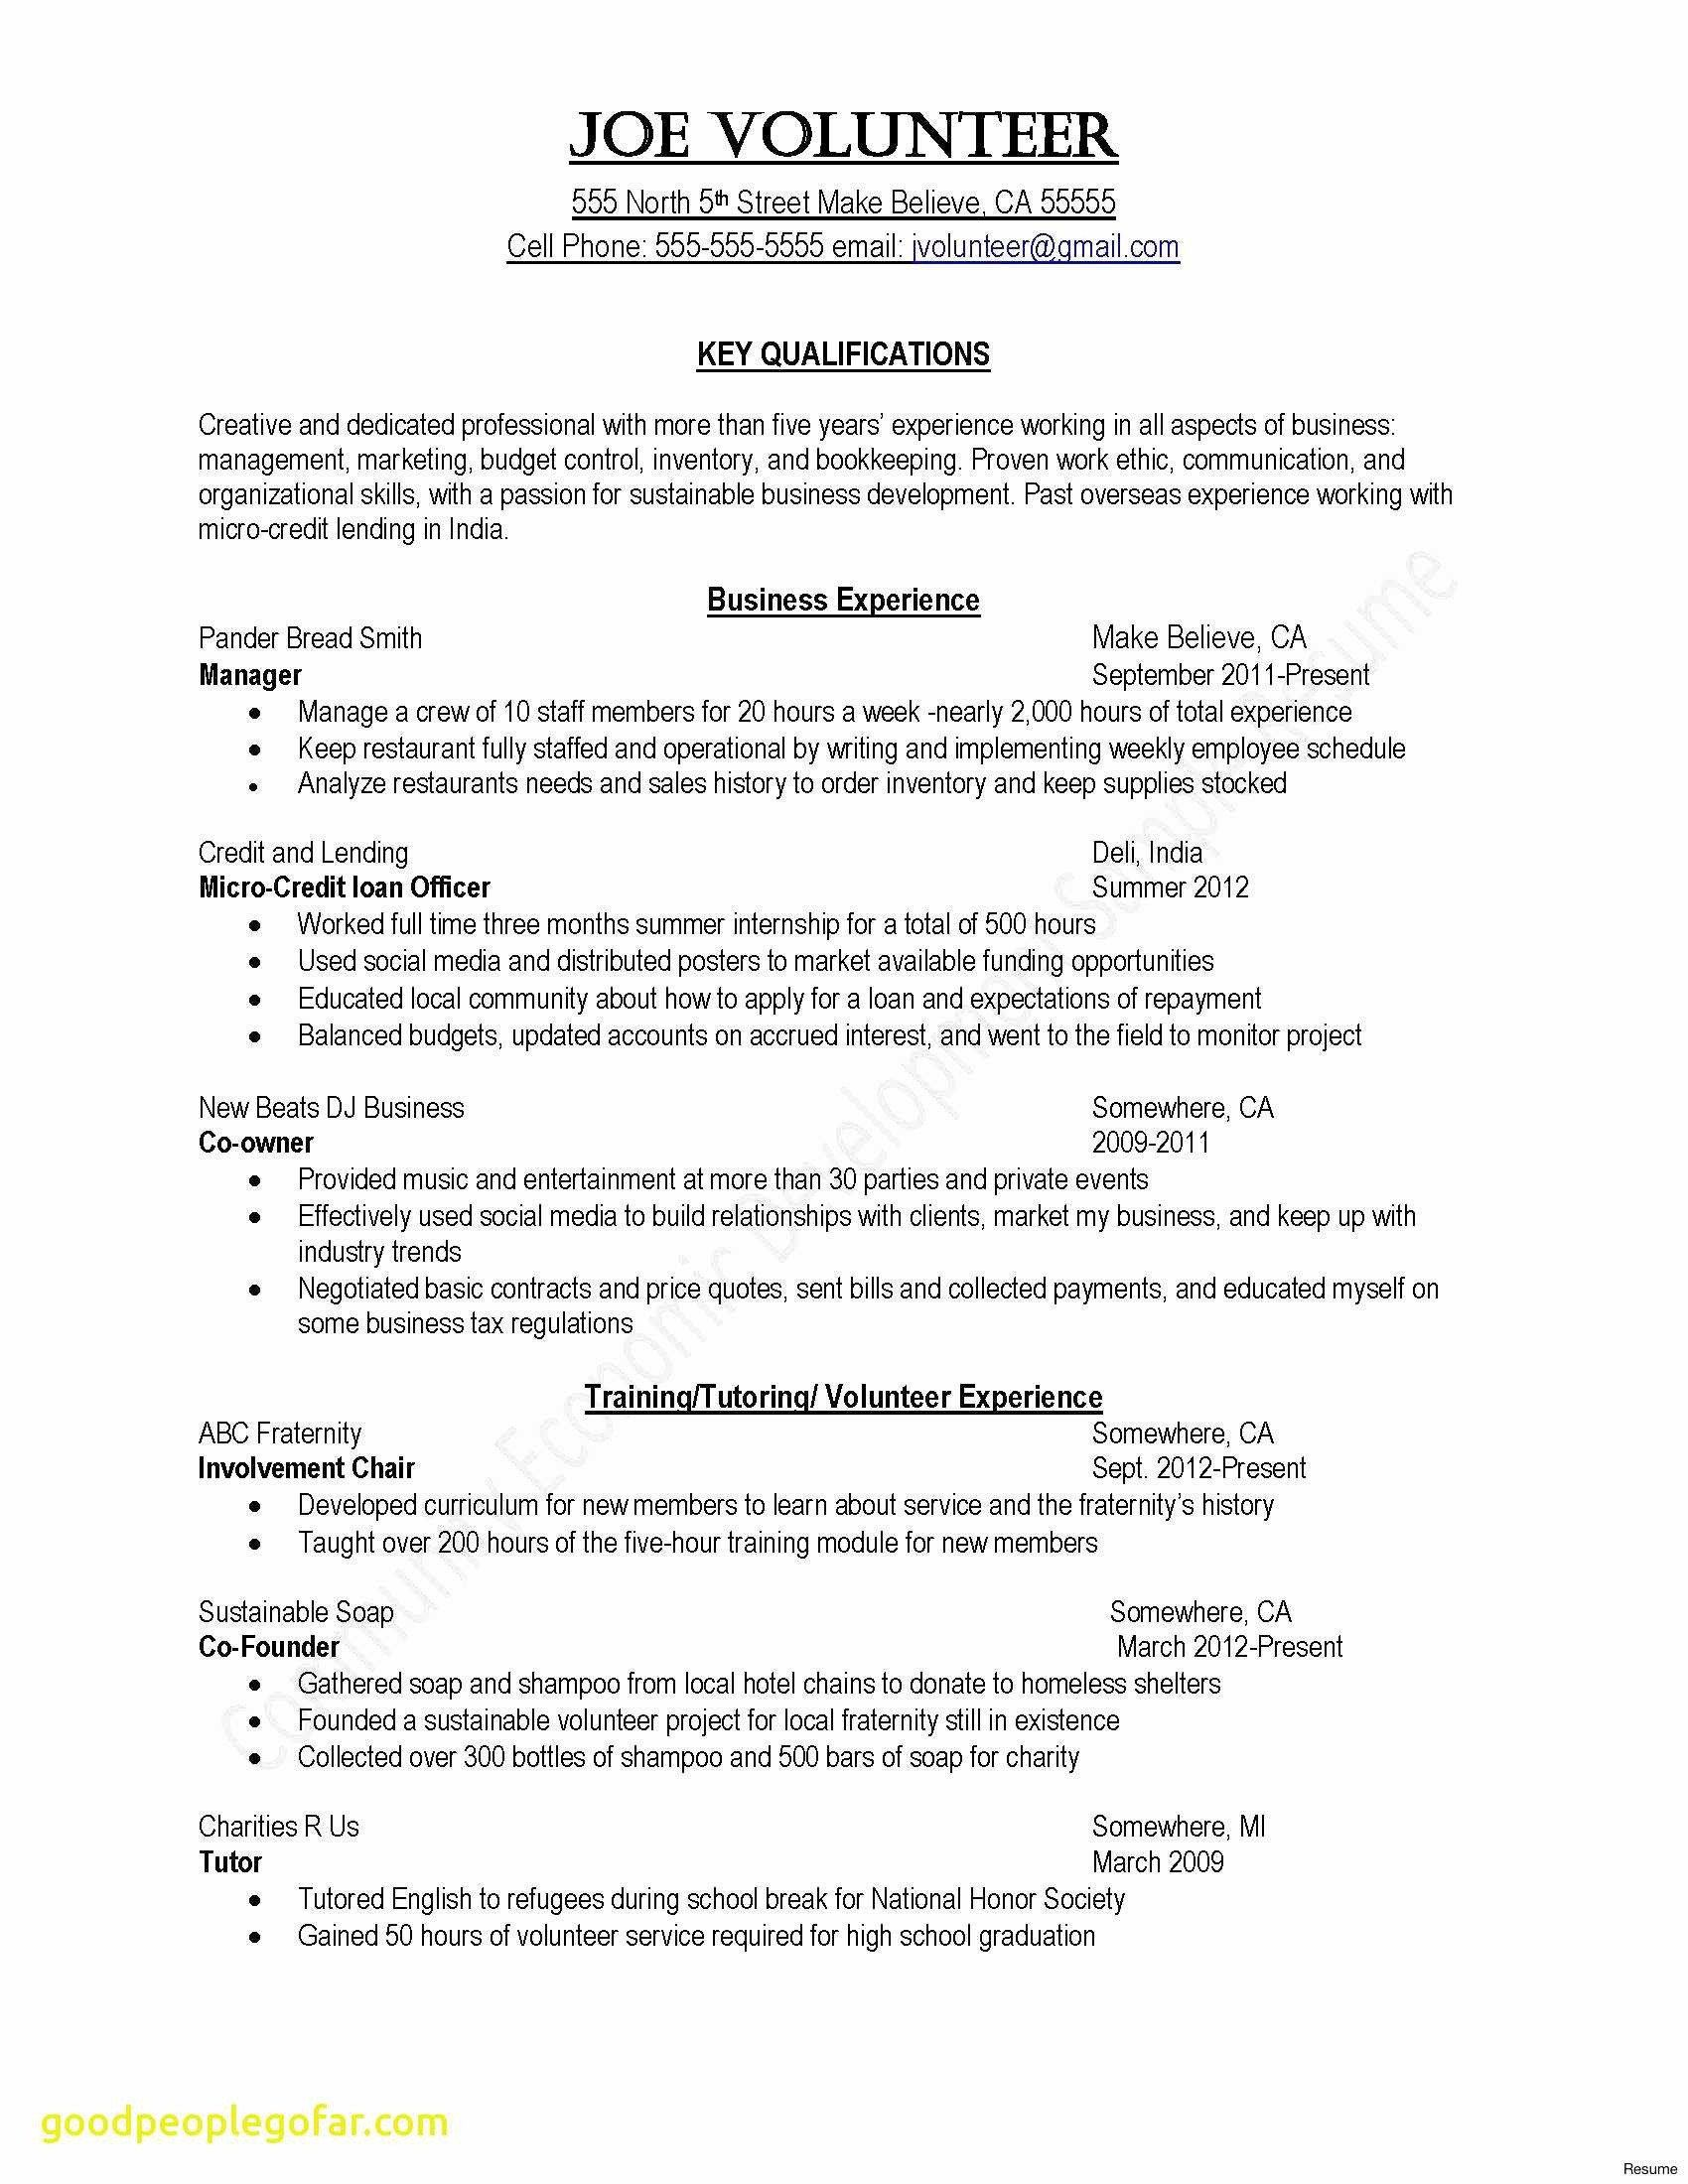 Resume Present Or Past Tense Fresh 79 Inspiring S Resume Examples With References Page In 2020 Resume Skills Business Plan Template Resume Template Examples